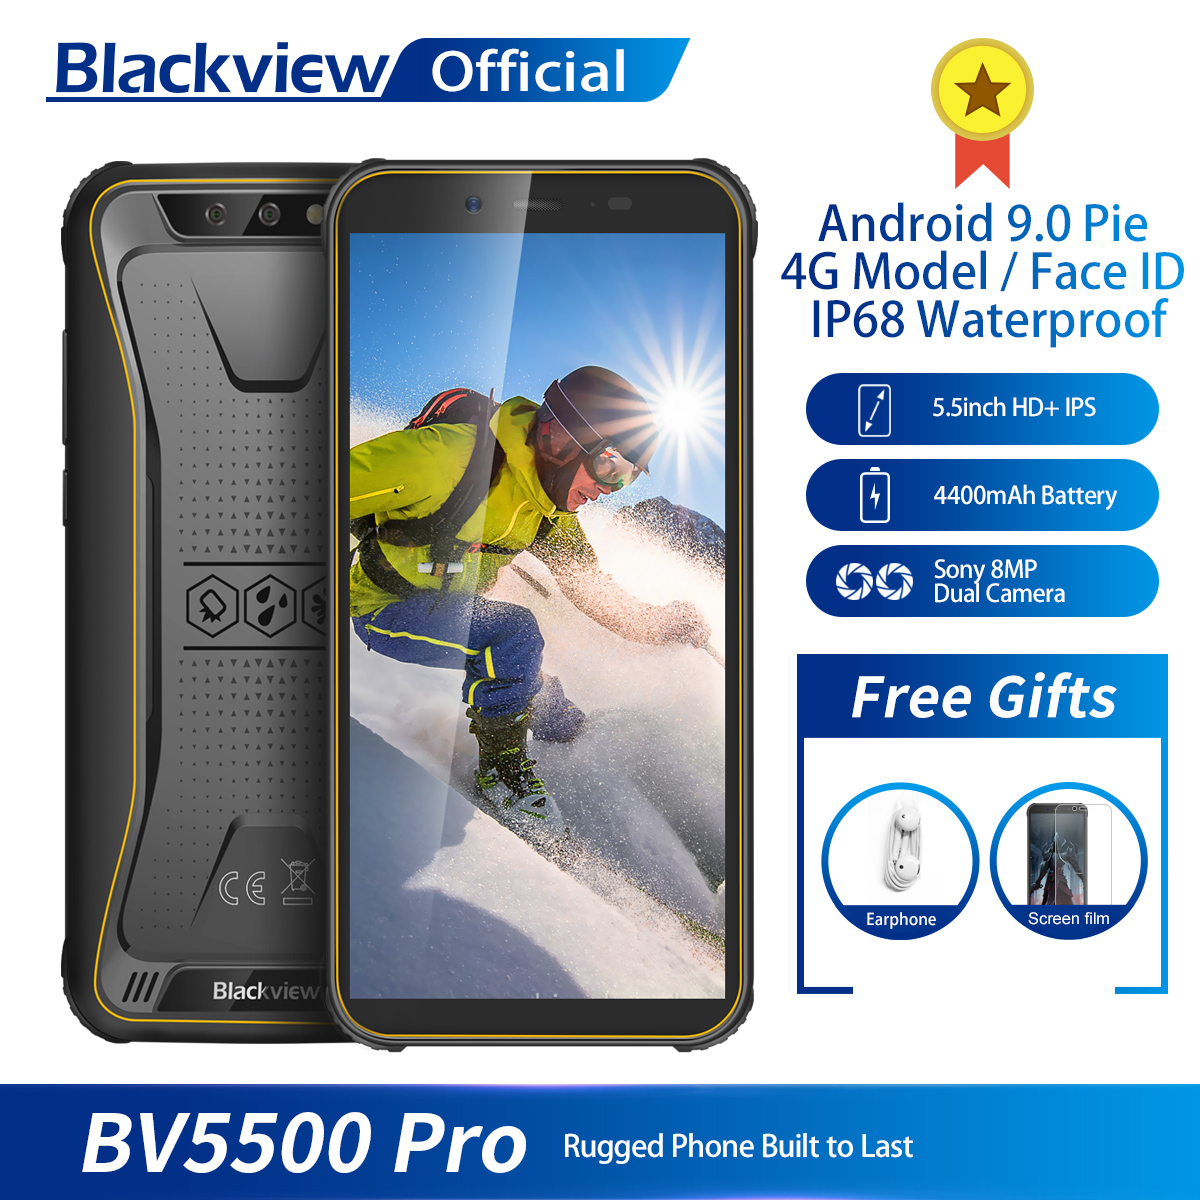 Blackview BV5500 pro IP68 Waterproof 4G Mobile Phone 3GB+16GB 5.5 Screen 4400mAh Android 9.0 Pie Dual SIM Rugged Smartphone image